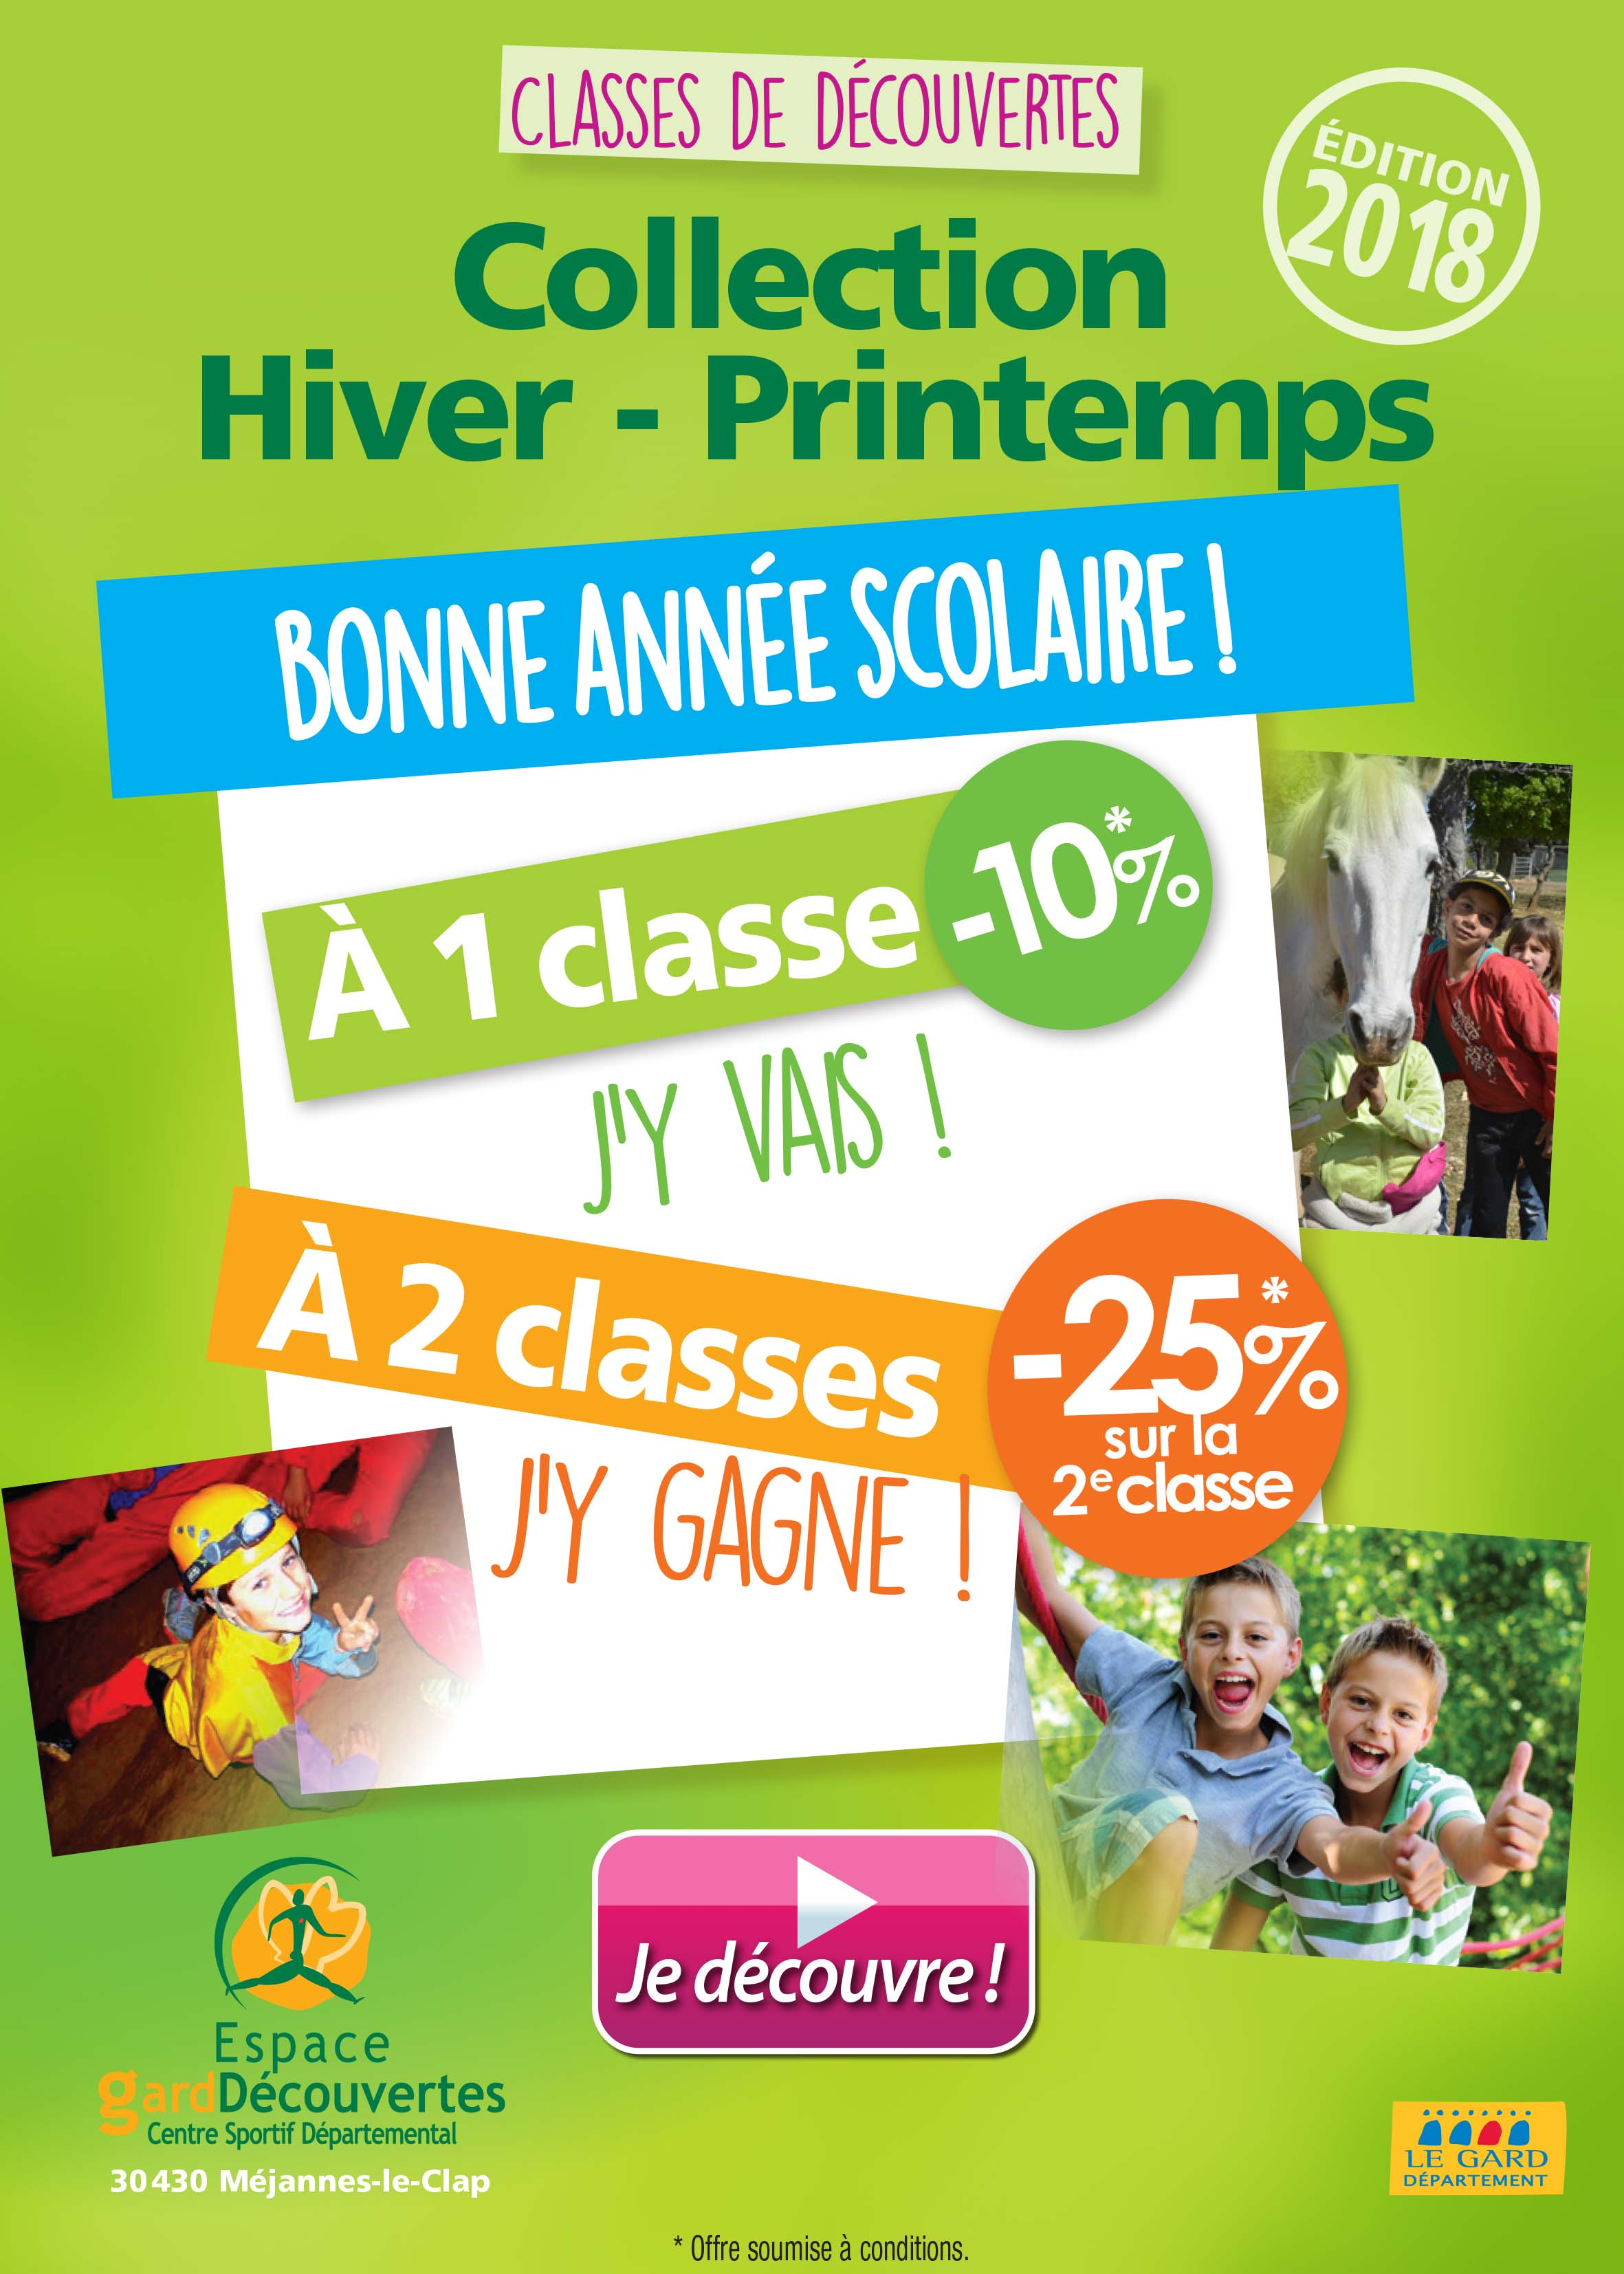 visuel collection hiver